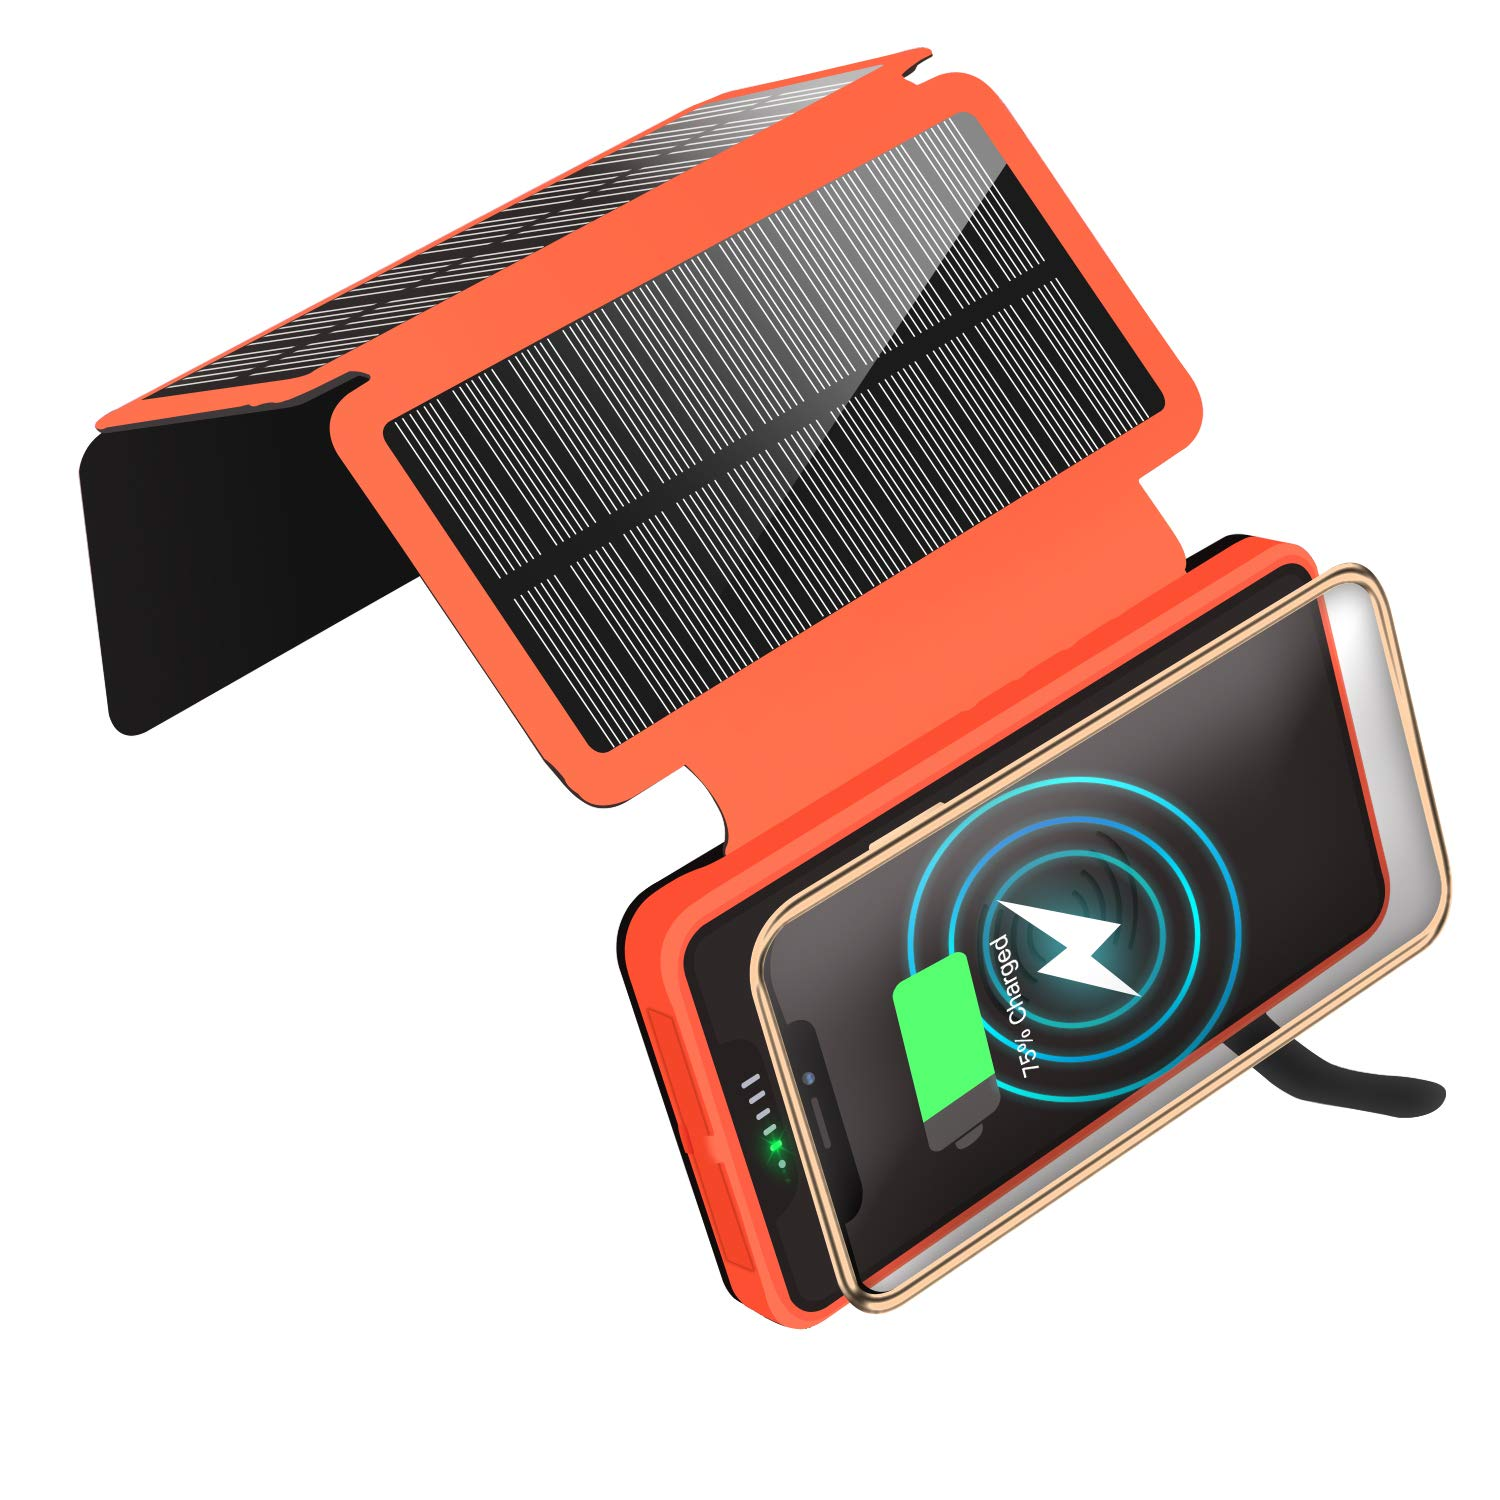 Solar Charger Qi Wireless Charger Portable Solar Power Bank 20000mAh Waterproof Battery Packs with Dual Ports Solar Phone Charger for iPhone, Andriod Phone, iPad(Orange Wireless Charger)